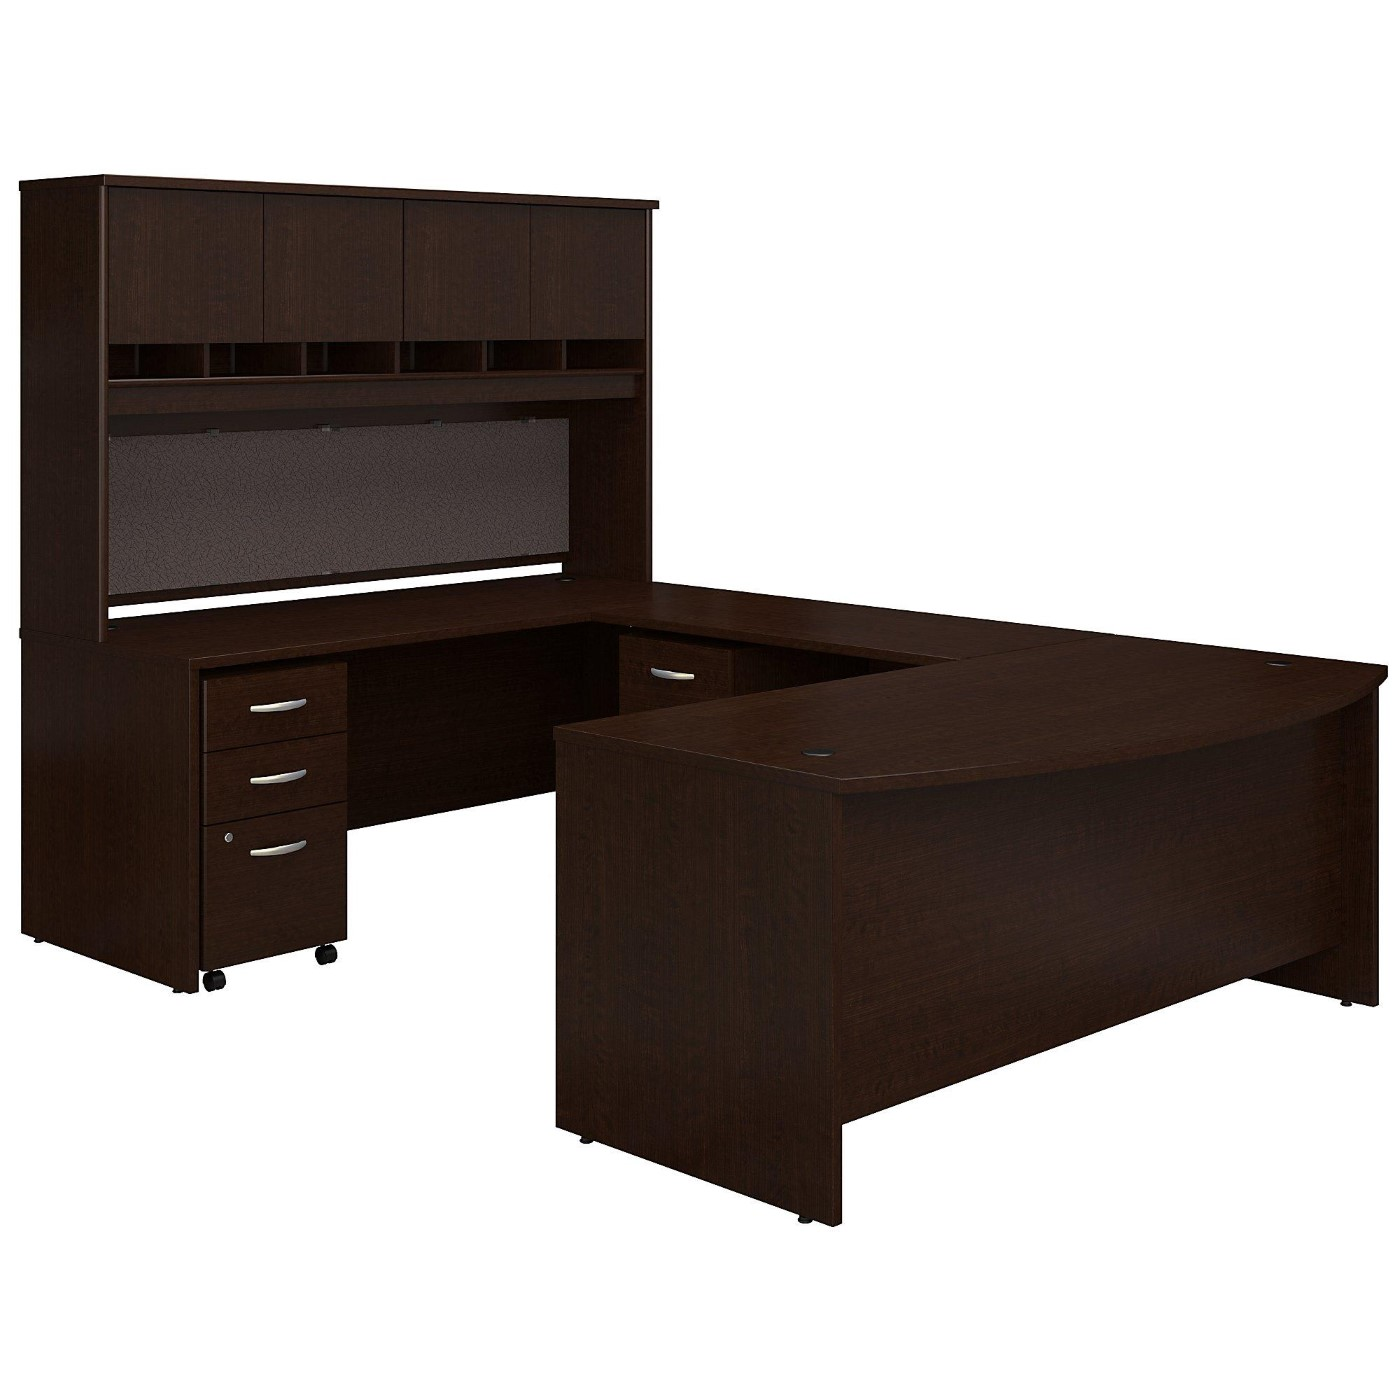 BUSH BUSINESS FURNITURE 72W BOW FRONT U SHAPED DESK WITH HUTCH AND STORAGE. FREE SHIPPING.  SALE DEDUCT 10% MORE ENTER '10percent' IN COUPON CODE BOX WHILE CHECKING OUT.